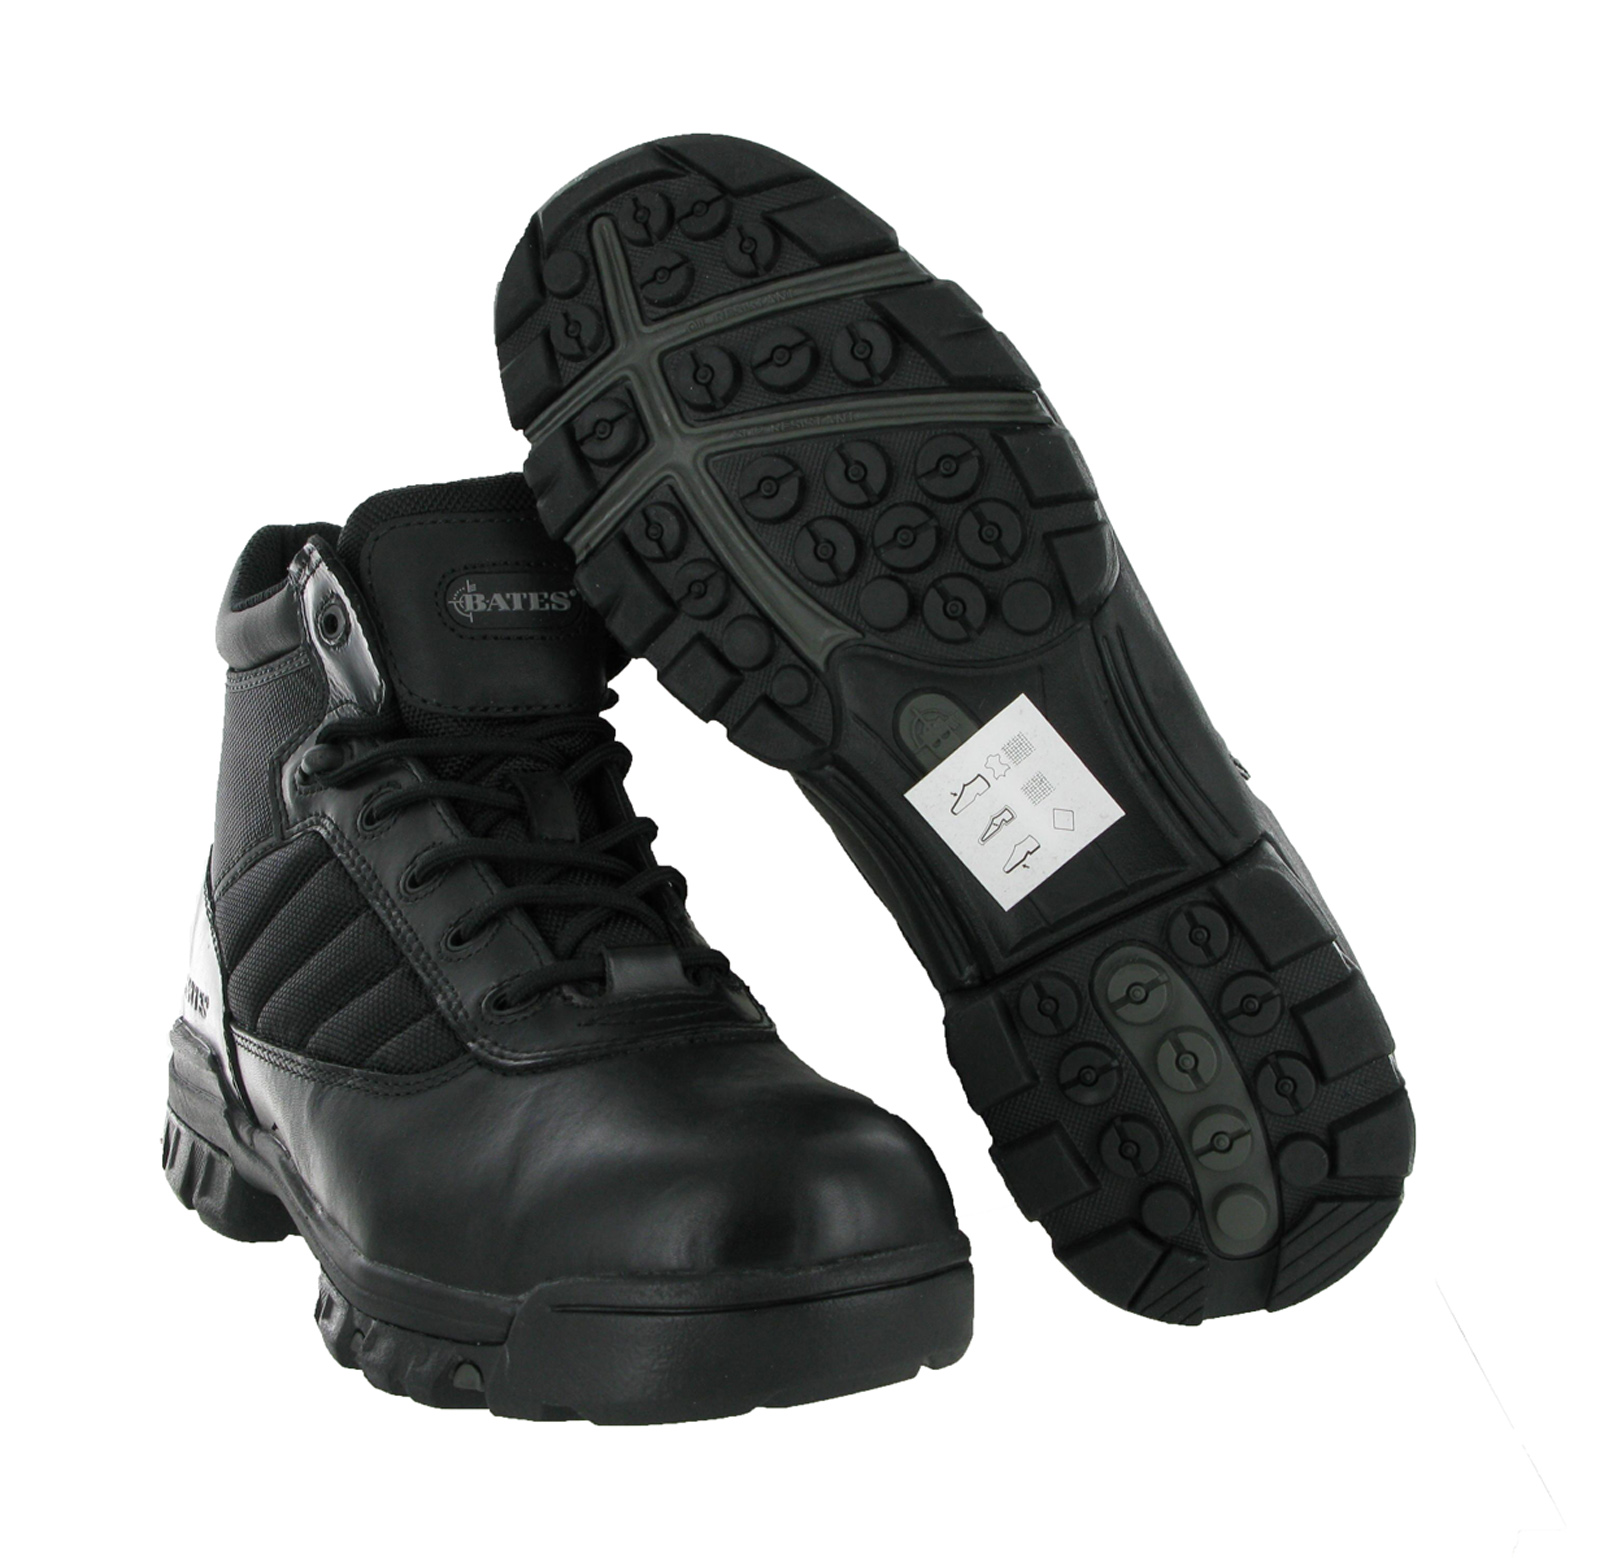 New-Mens-Bates-5-Tactical-Military-Sport-Black-Leather-Ankle-Boots-Size-3-14